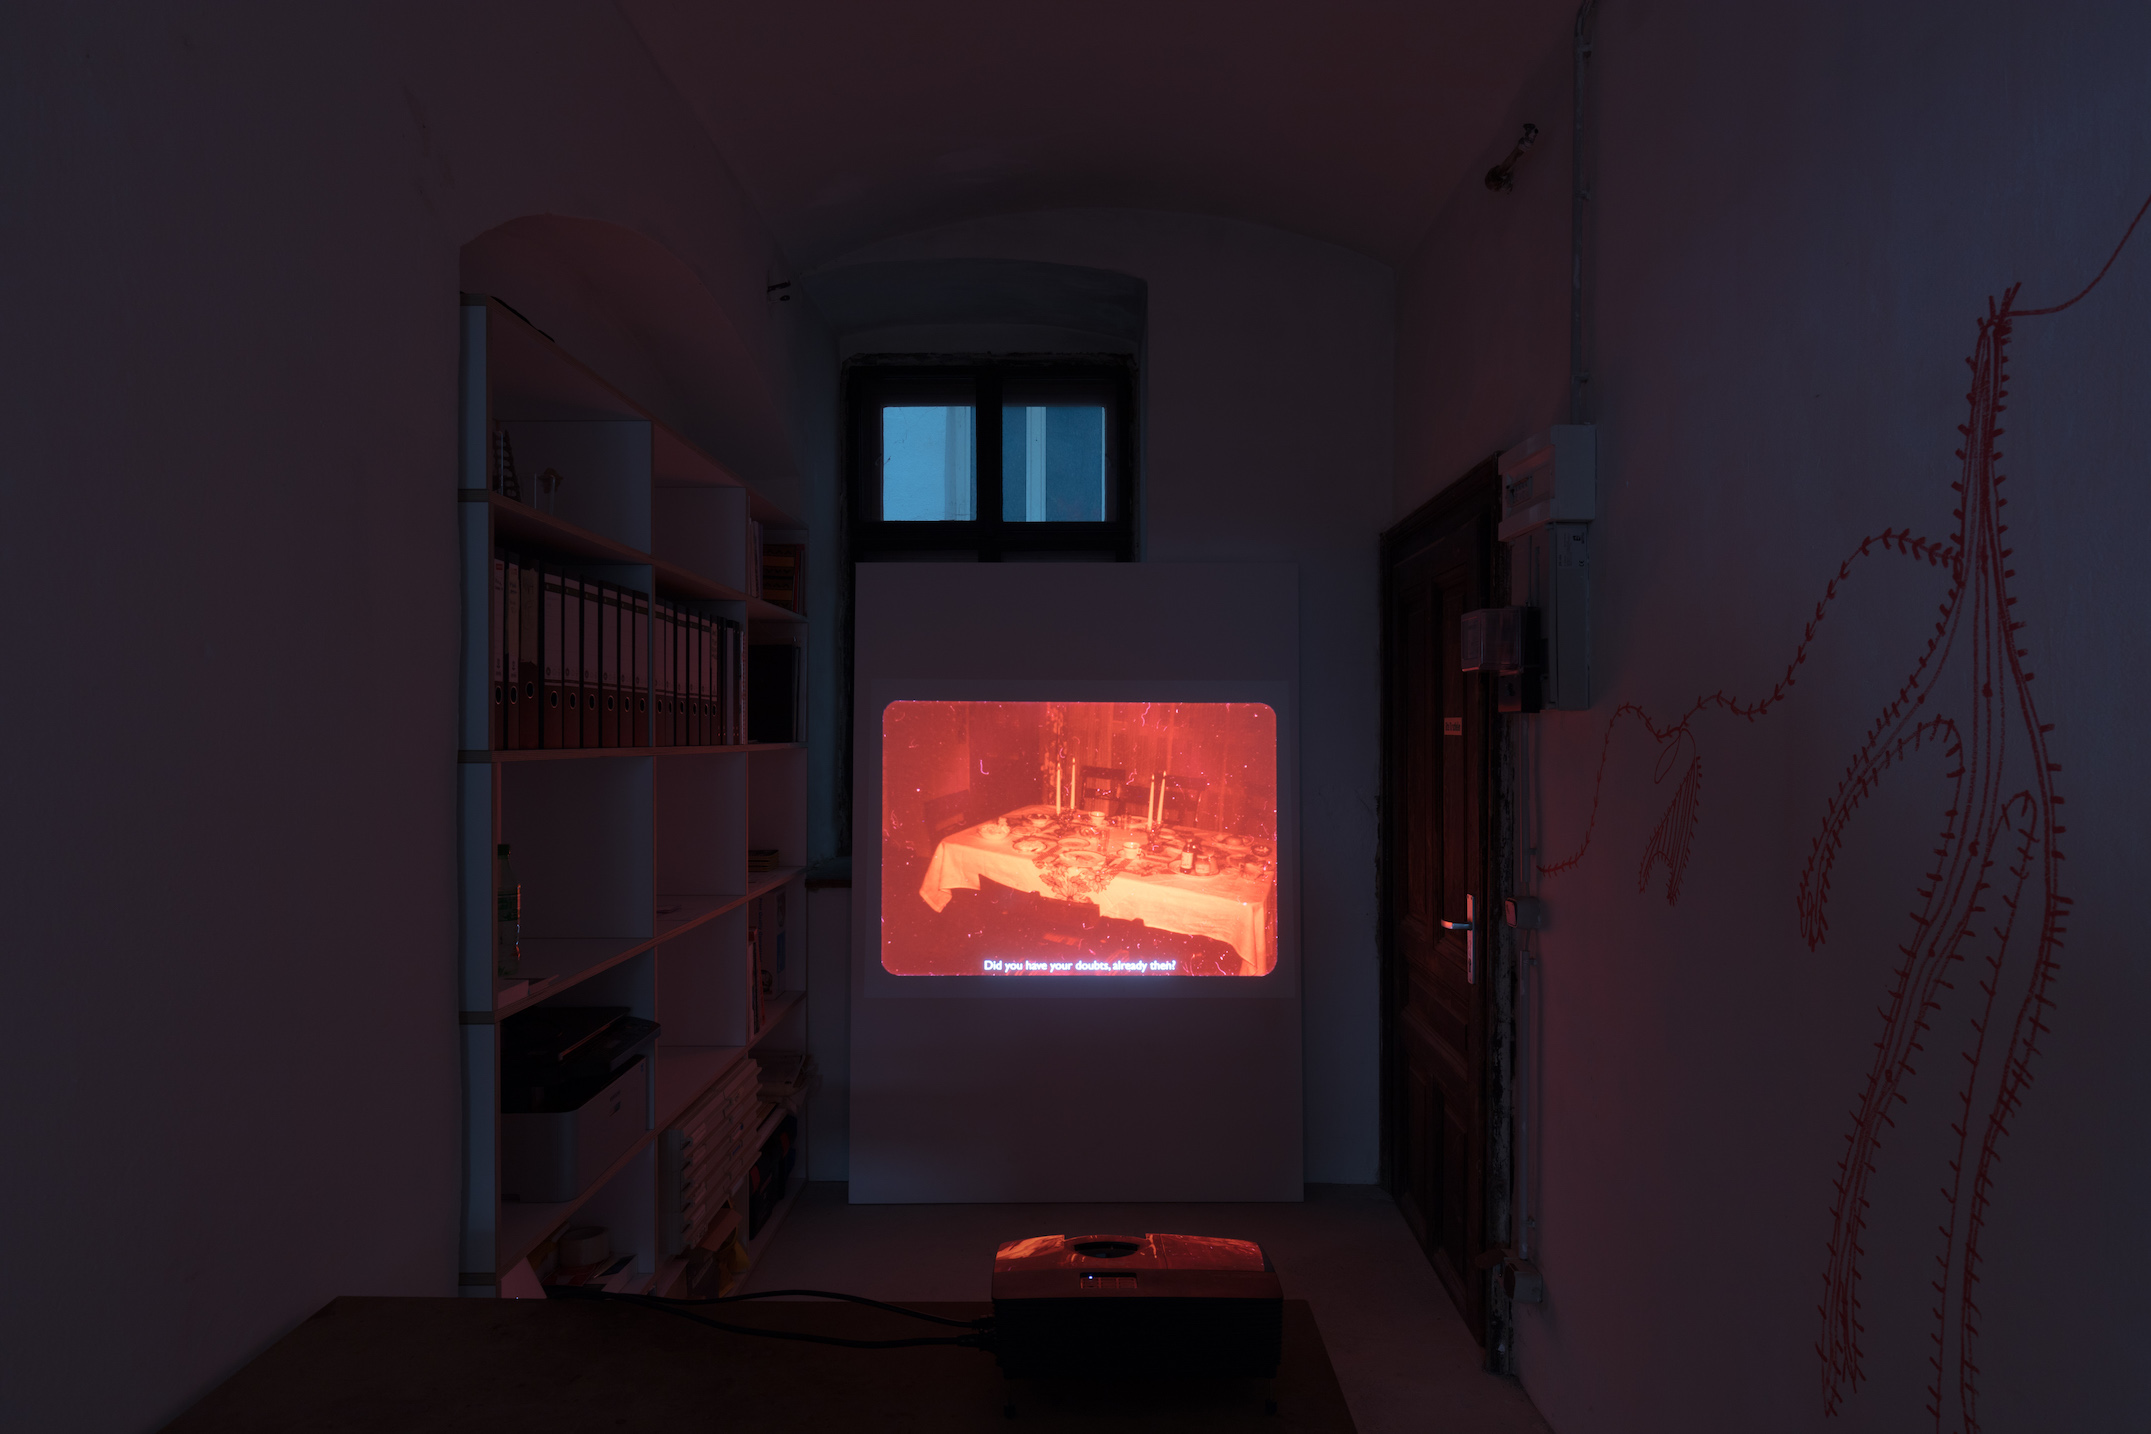 Igor Blomberg Tranaeus, What Might Once Have Belonged to Me (I), 2018, HD video, silent; Fatima Moallim, drawing performance